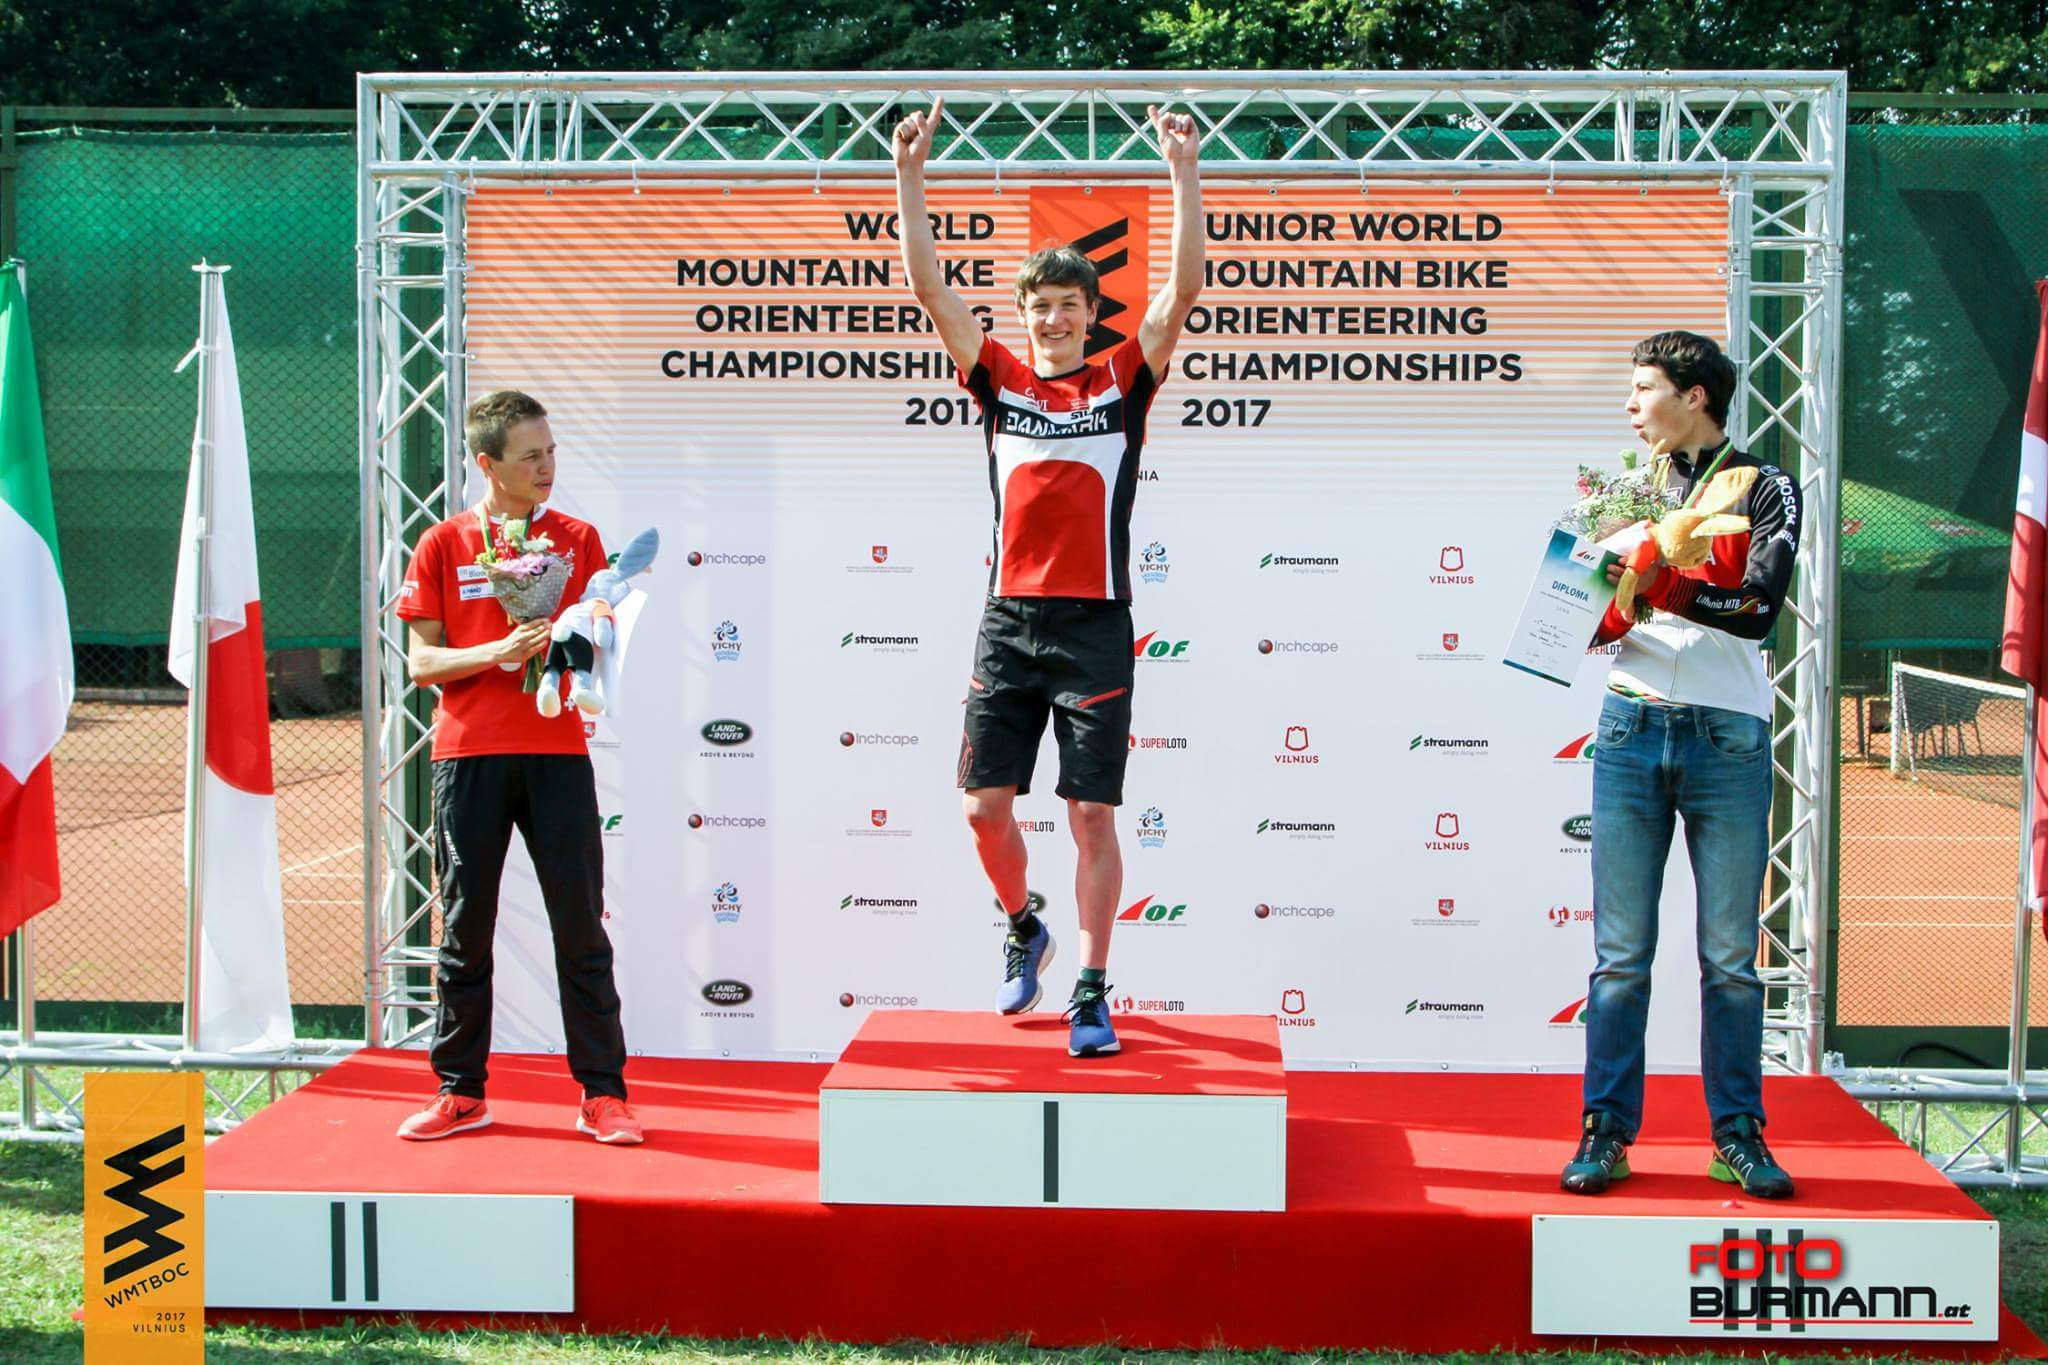 Prize giving ceremony Long (Rainer Burmann)